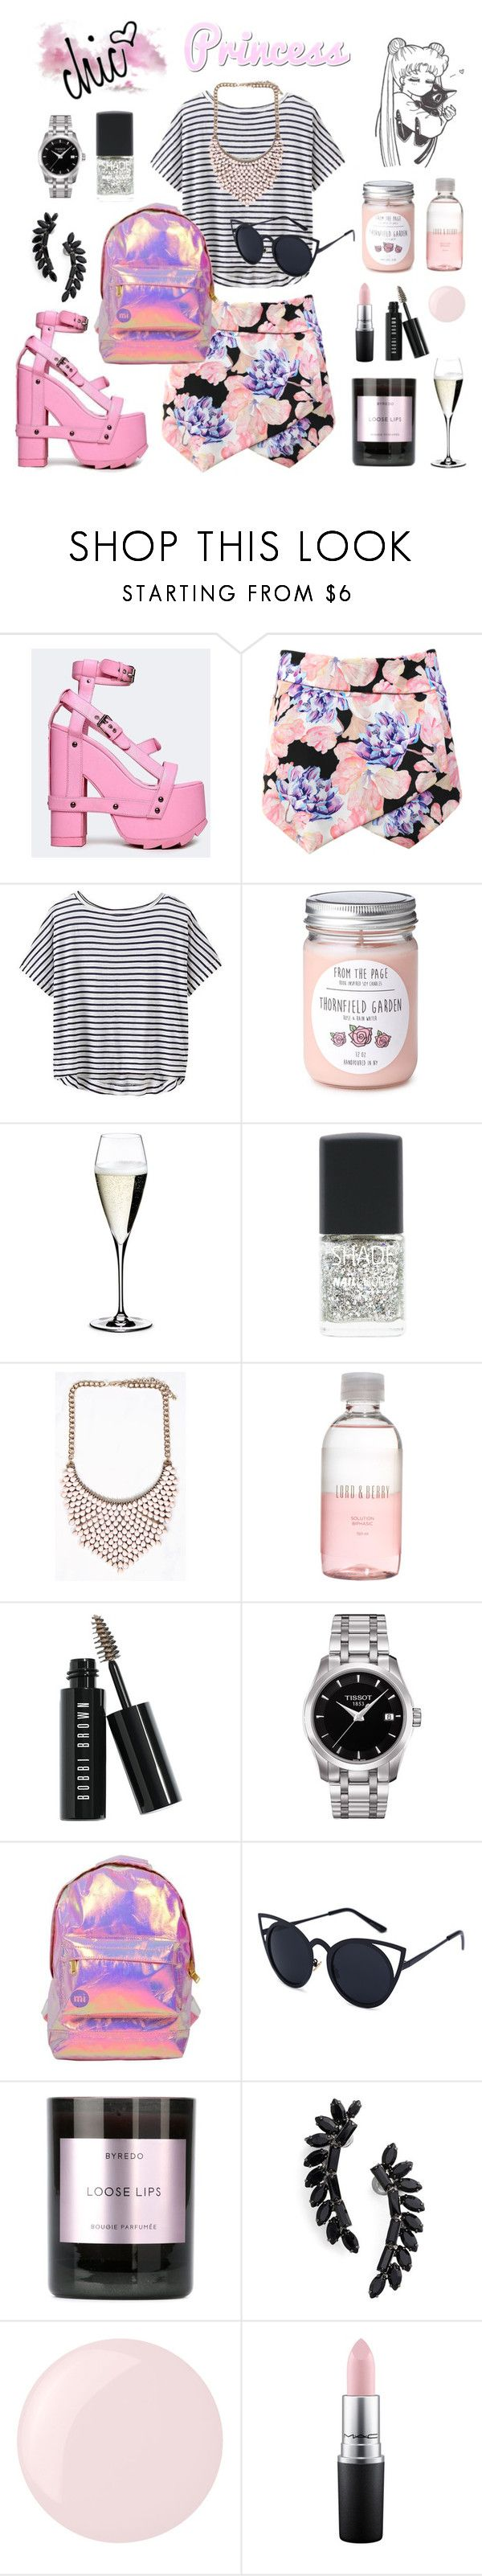 """(21)"" by cristina-daniela-munteanu ❤ liked on Polyvore featuring Y.R.U., Athleta, Riedel, Lane Bryant, Lord & Berry, Bobbi Brown Cosmetics, Tissot, Miss Selfridge, Byredo and Cristabelle"